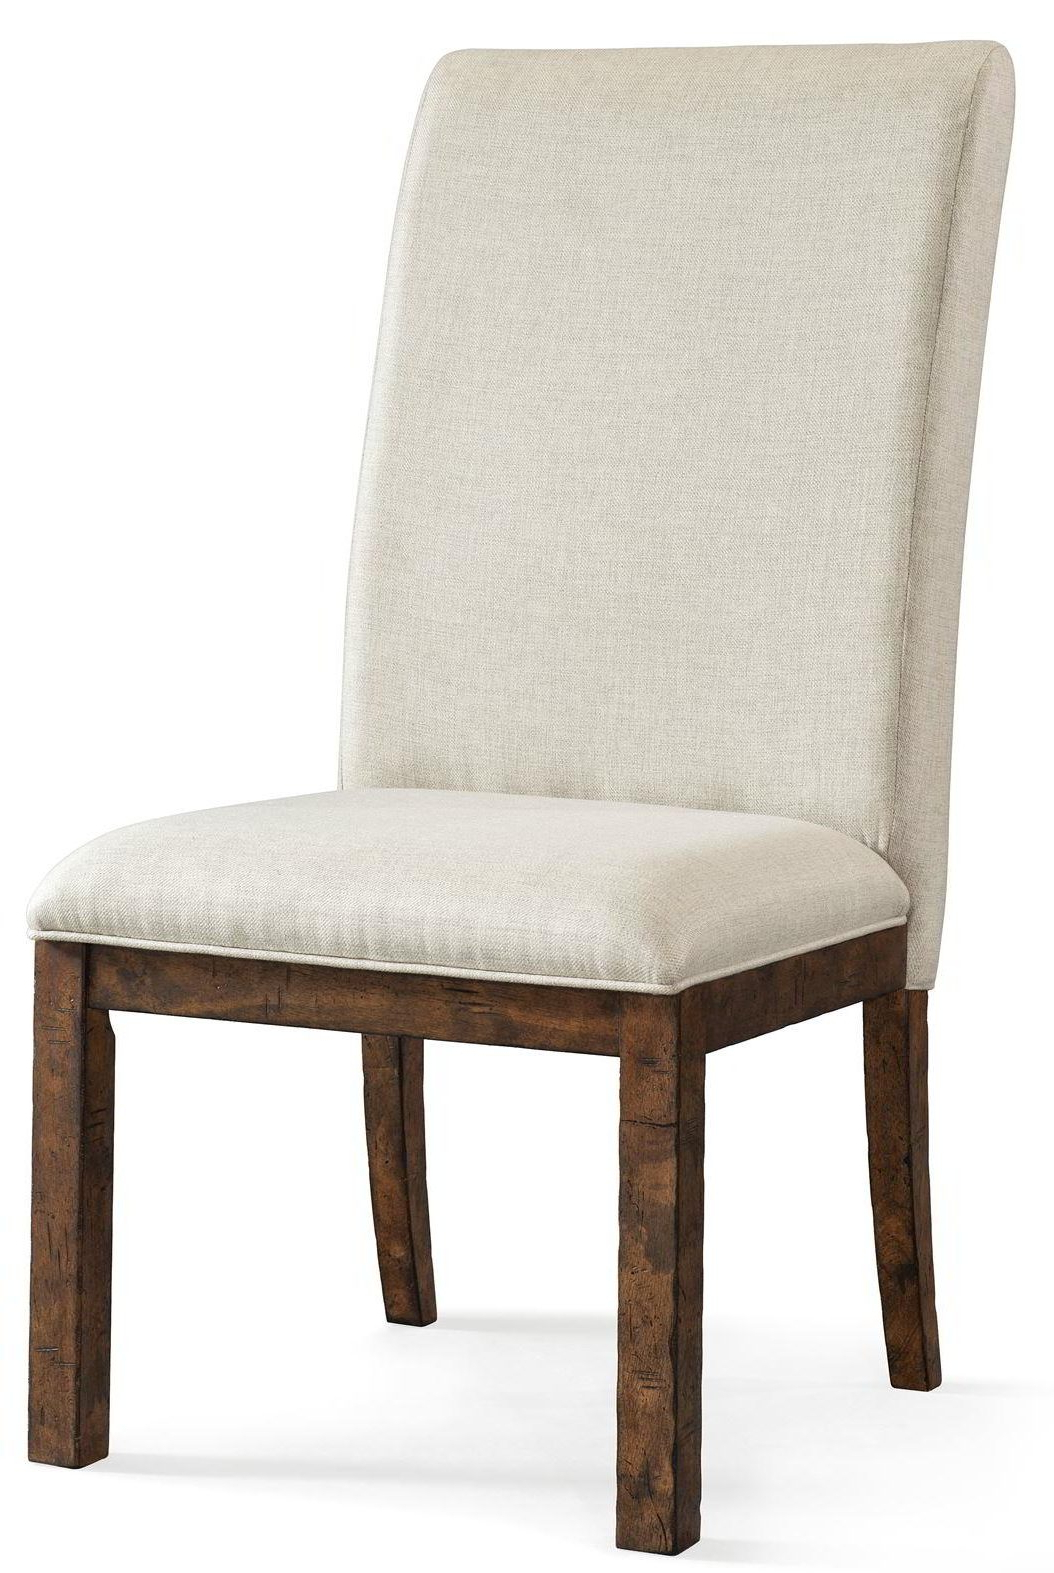 Gwen Upholstered Side Chair, Simple Elegance – Frontroom Furnishings For Widely Used Gwen Sofa Chairs (View 12 of 20)